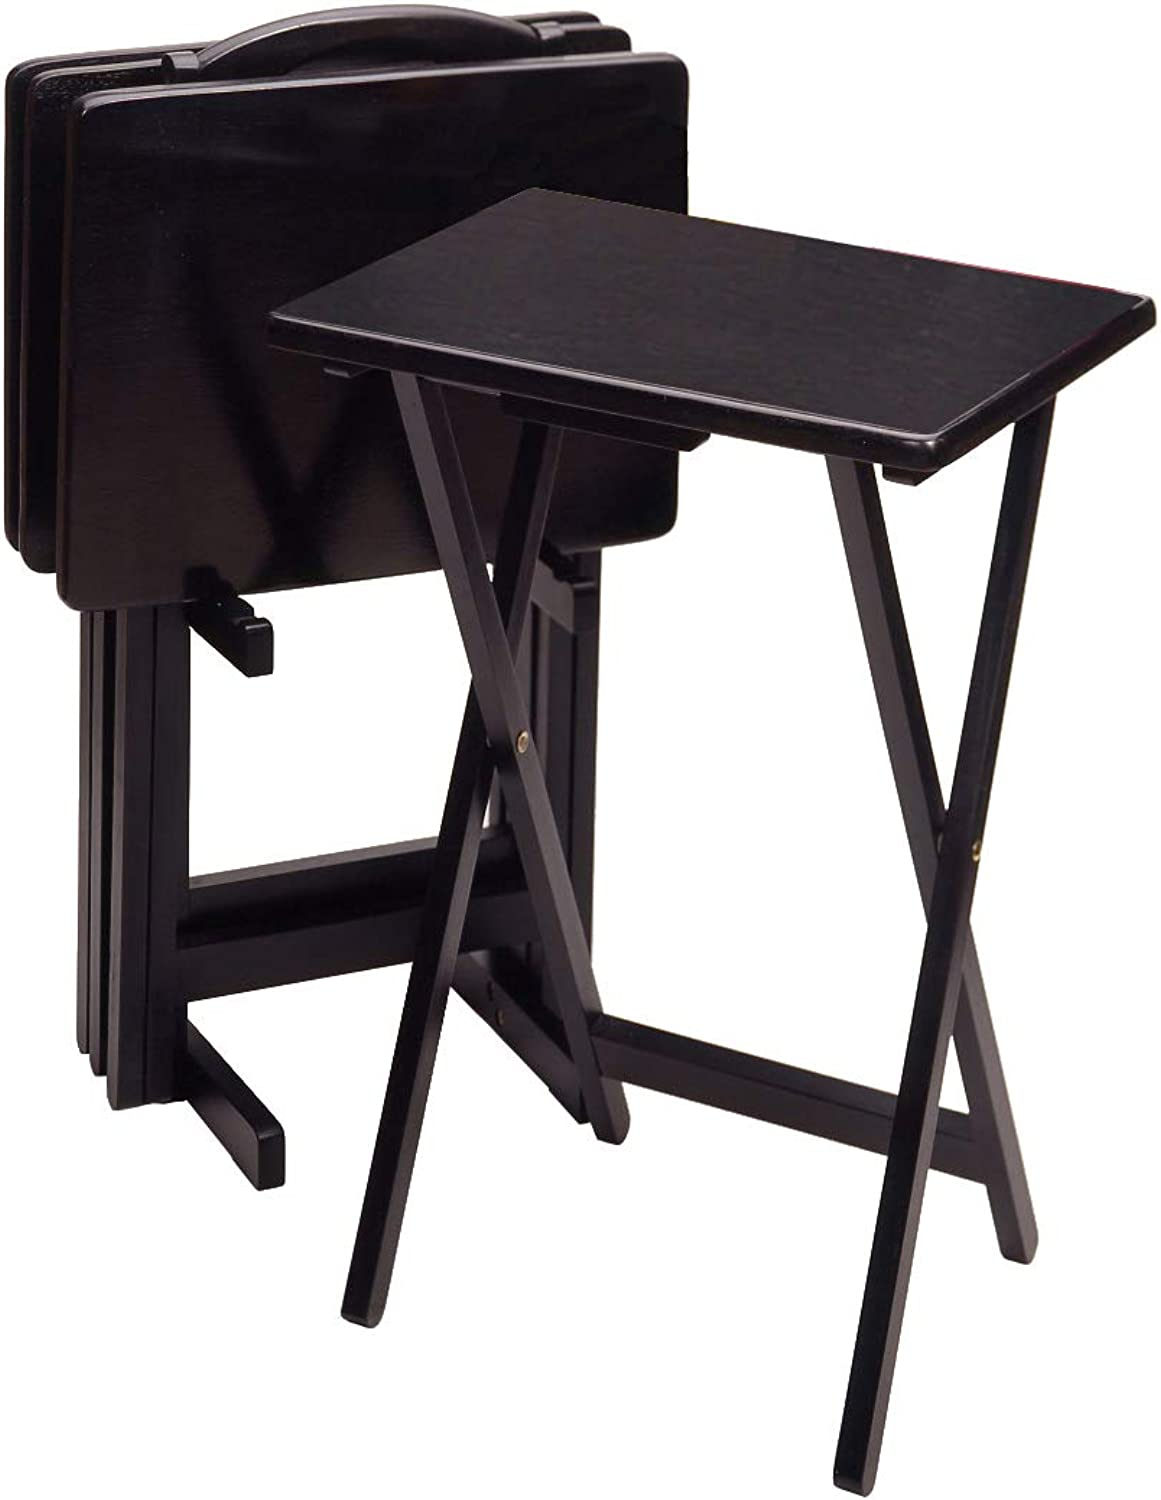 Winsome Wood 22520 Alex Snack Table, Black